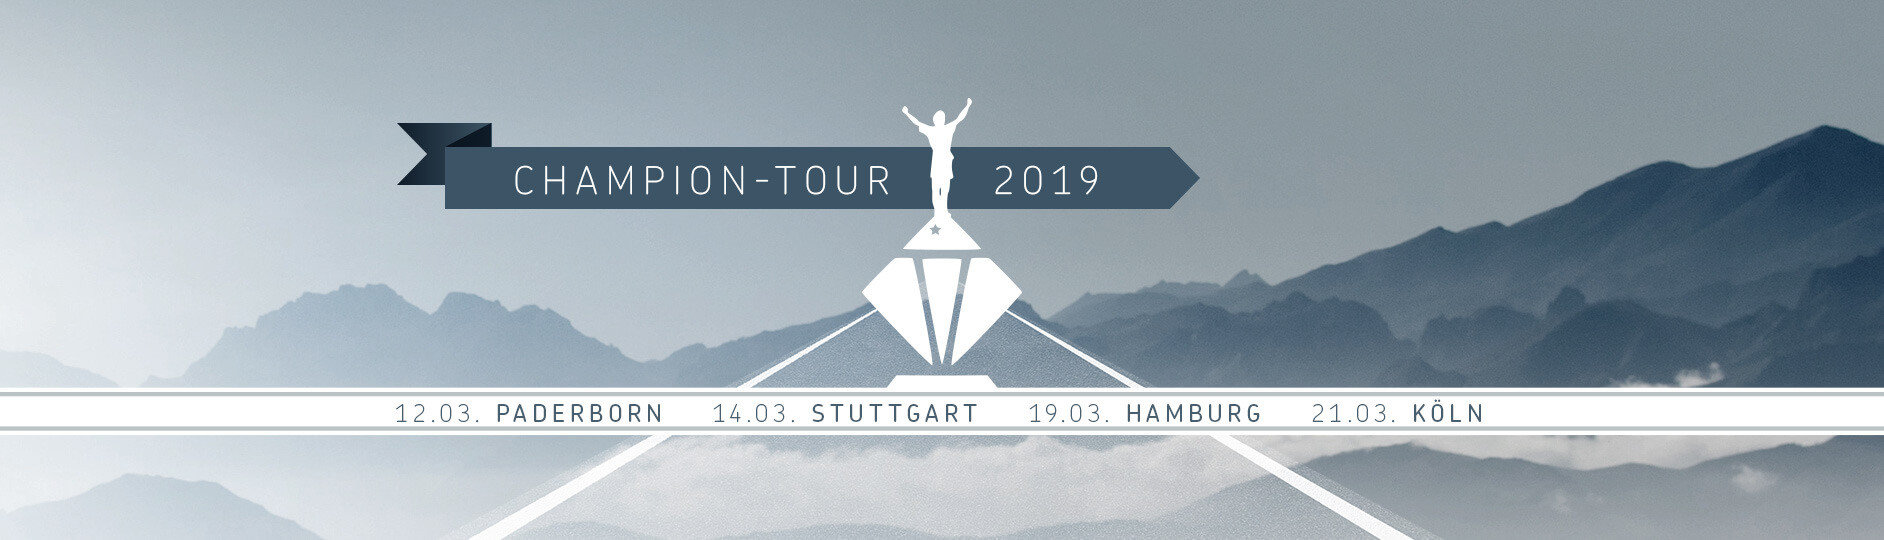 NoSpamProxy Champion Tour 2019